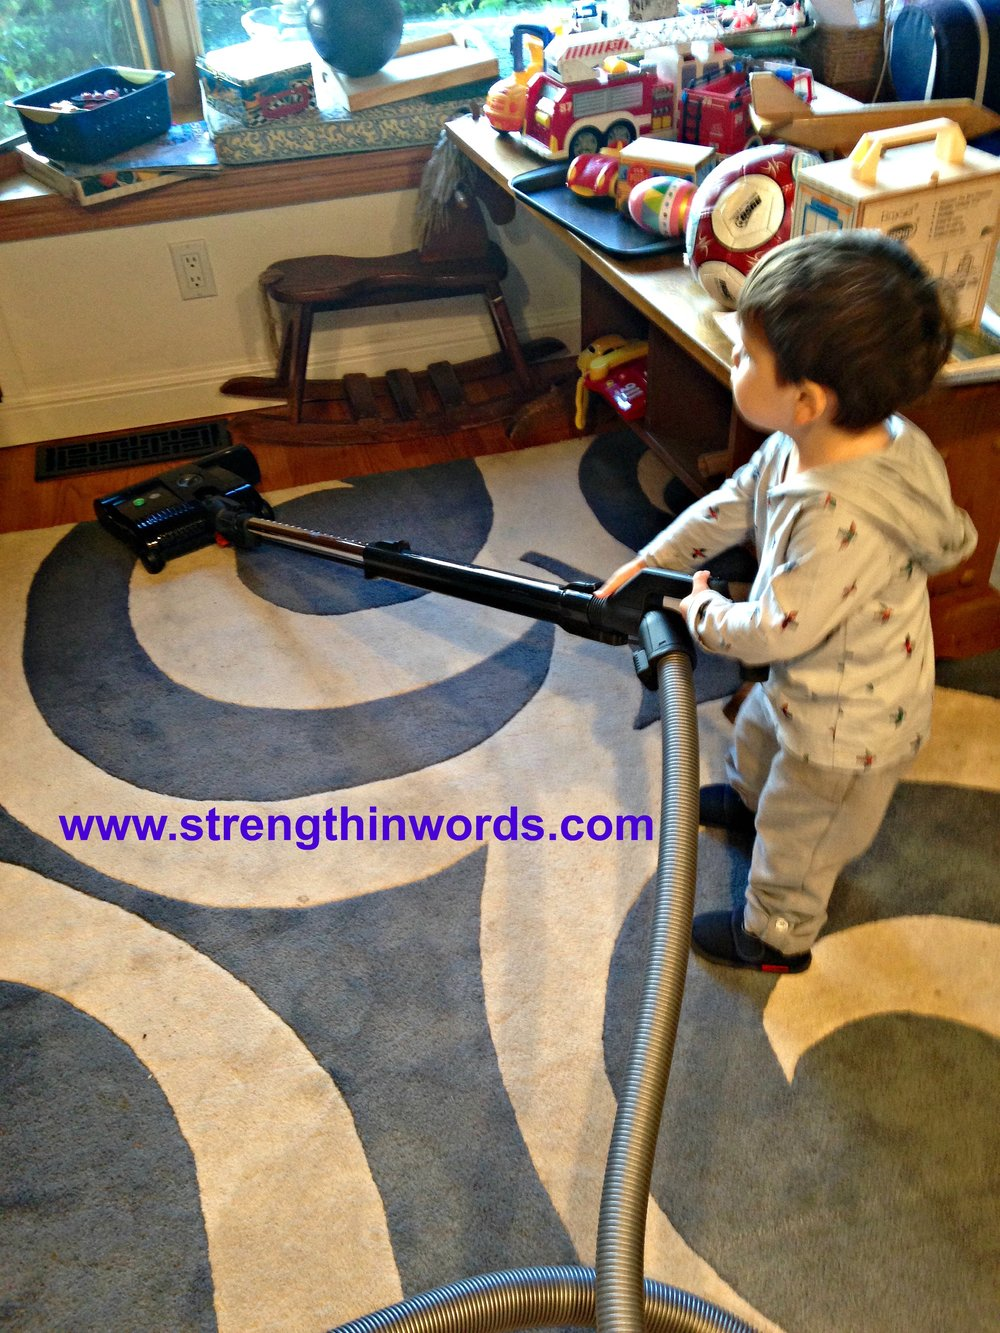 Heavy work, in the form of vacuuming!